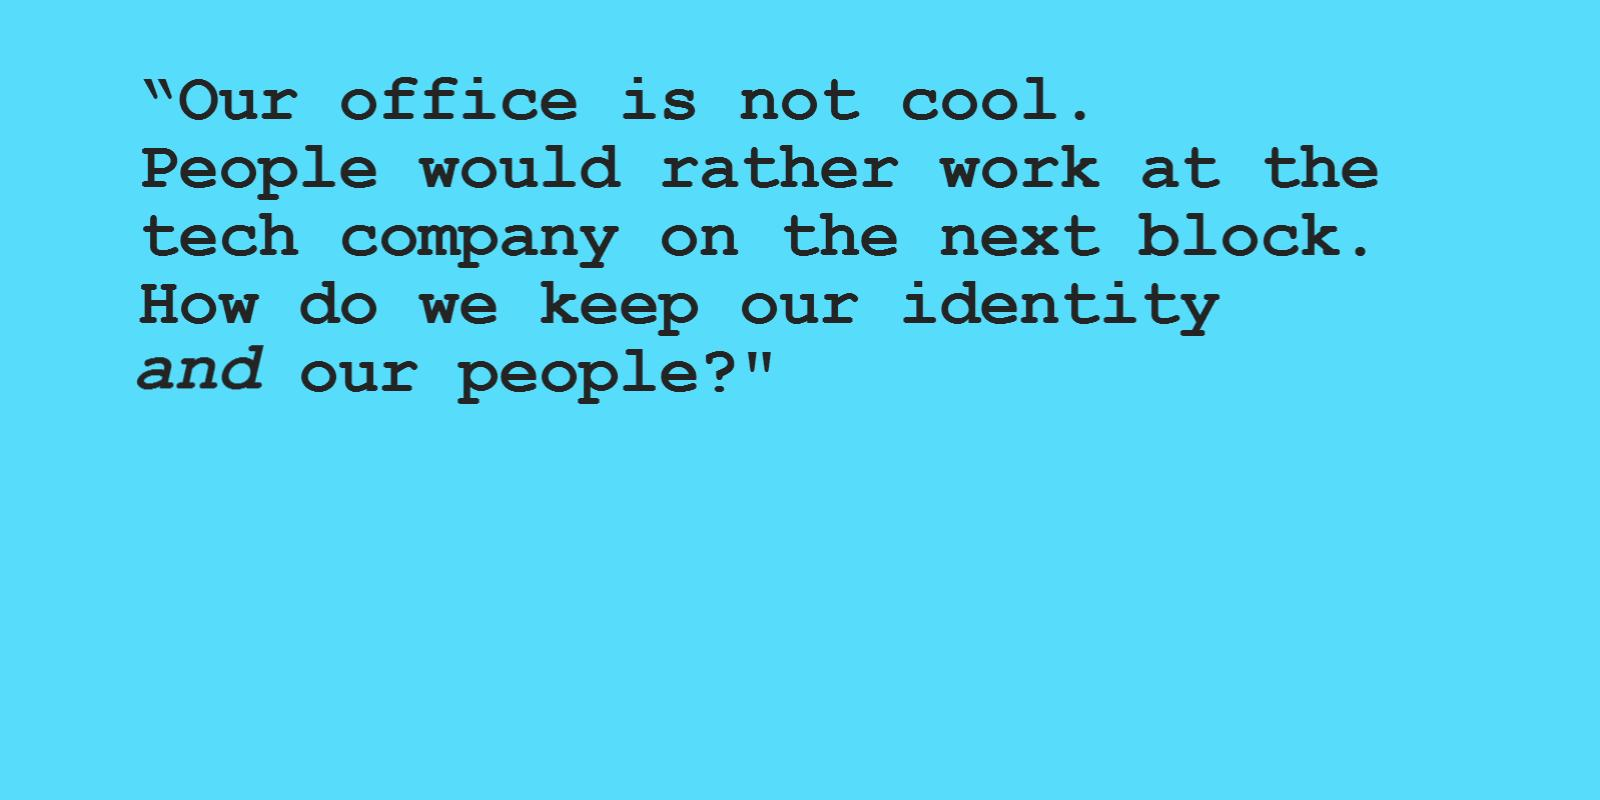 Image of Identity and personnel retention and how workplace strategies can help